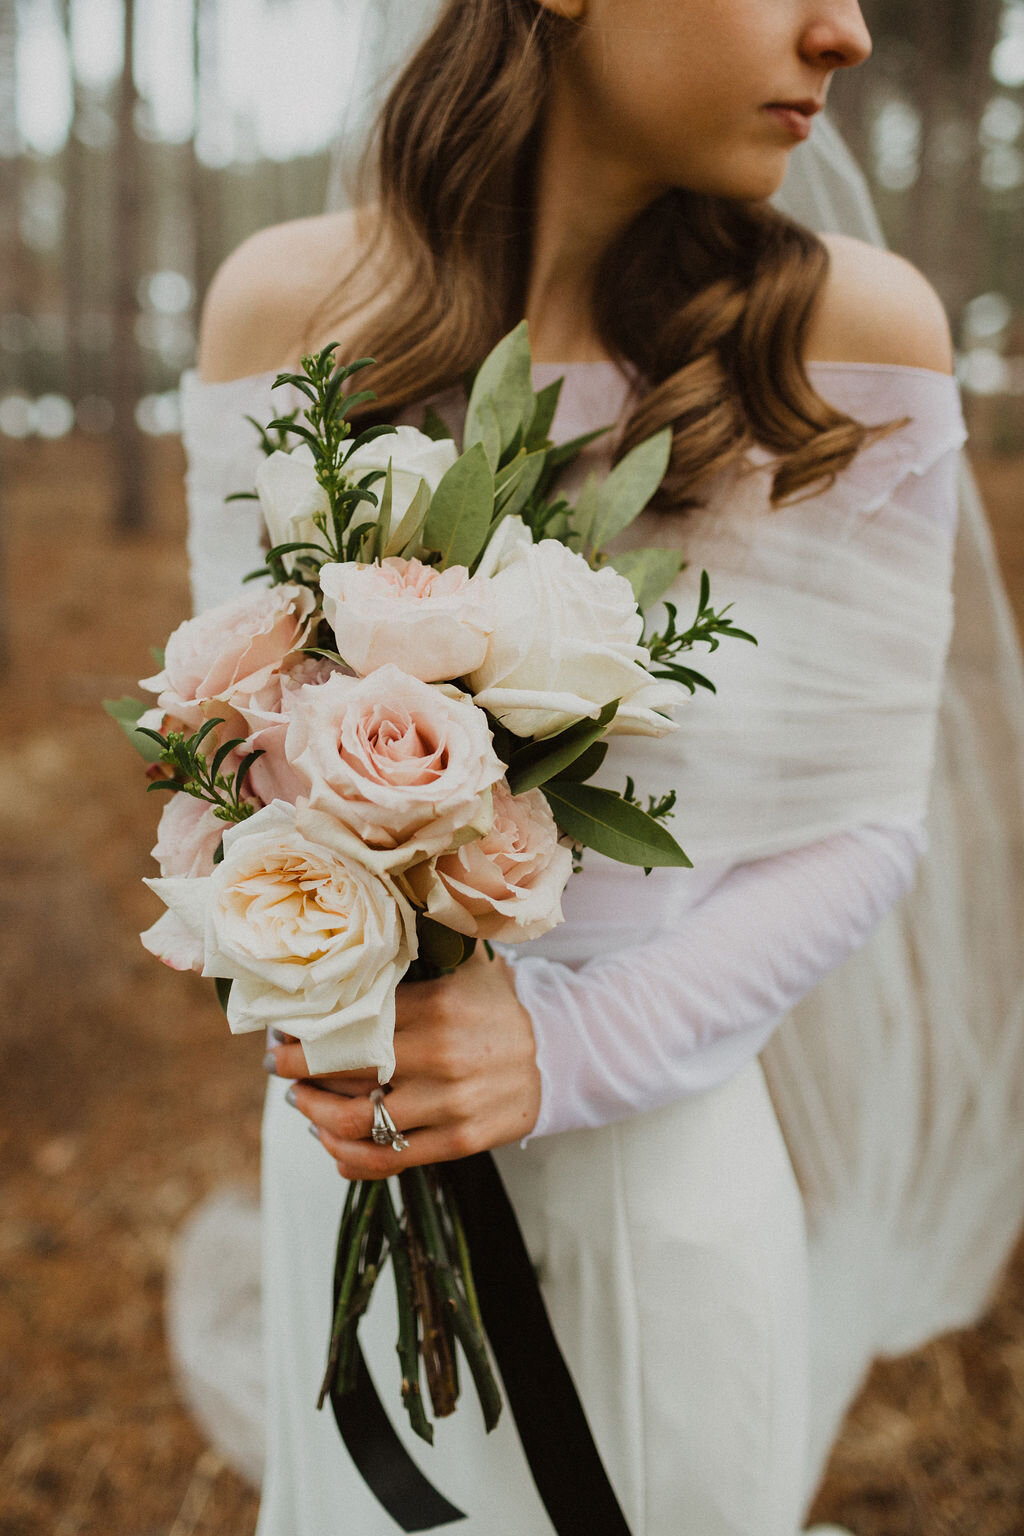 Wedding Bouquet Blush and White Roses and Lillies